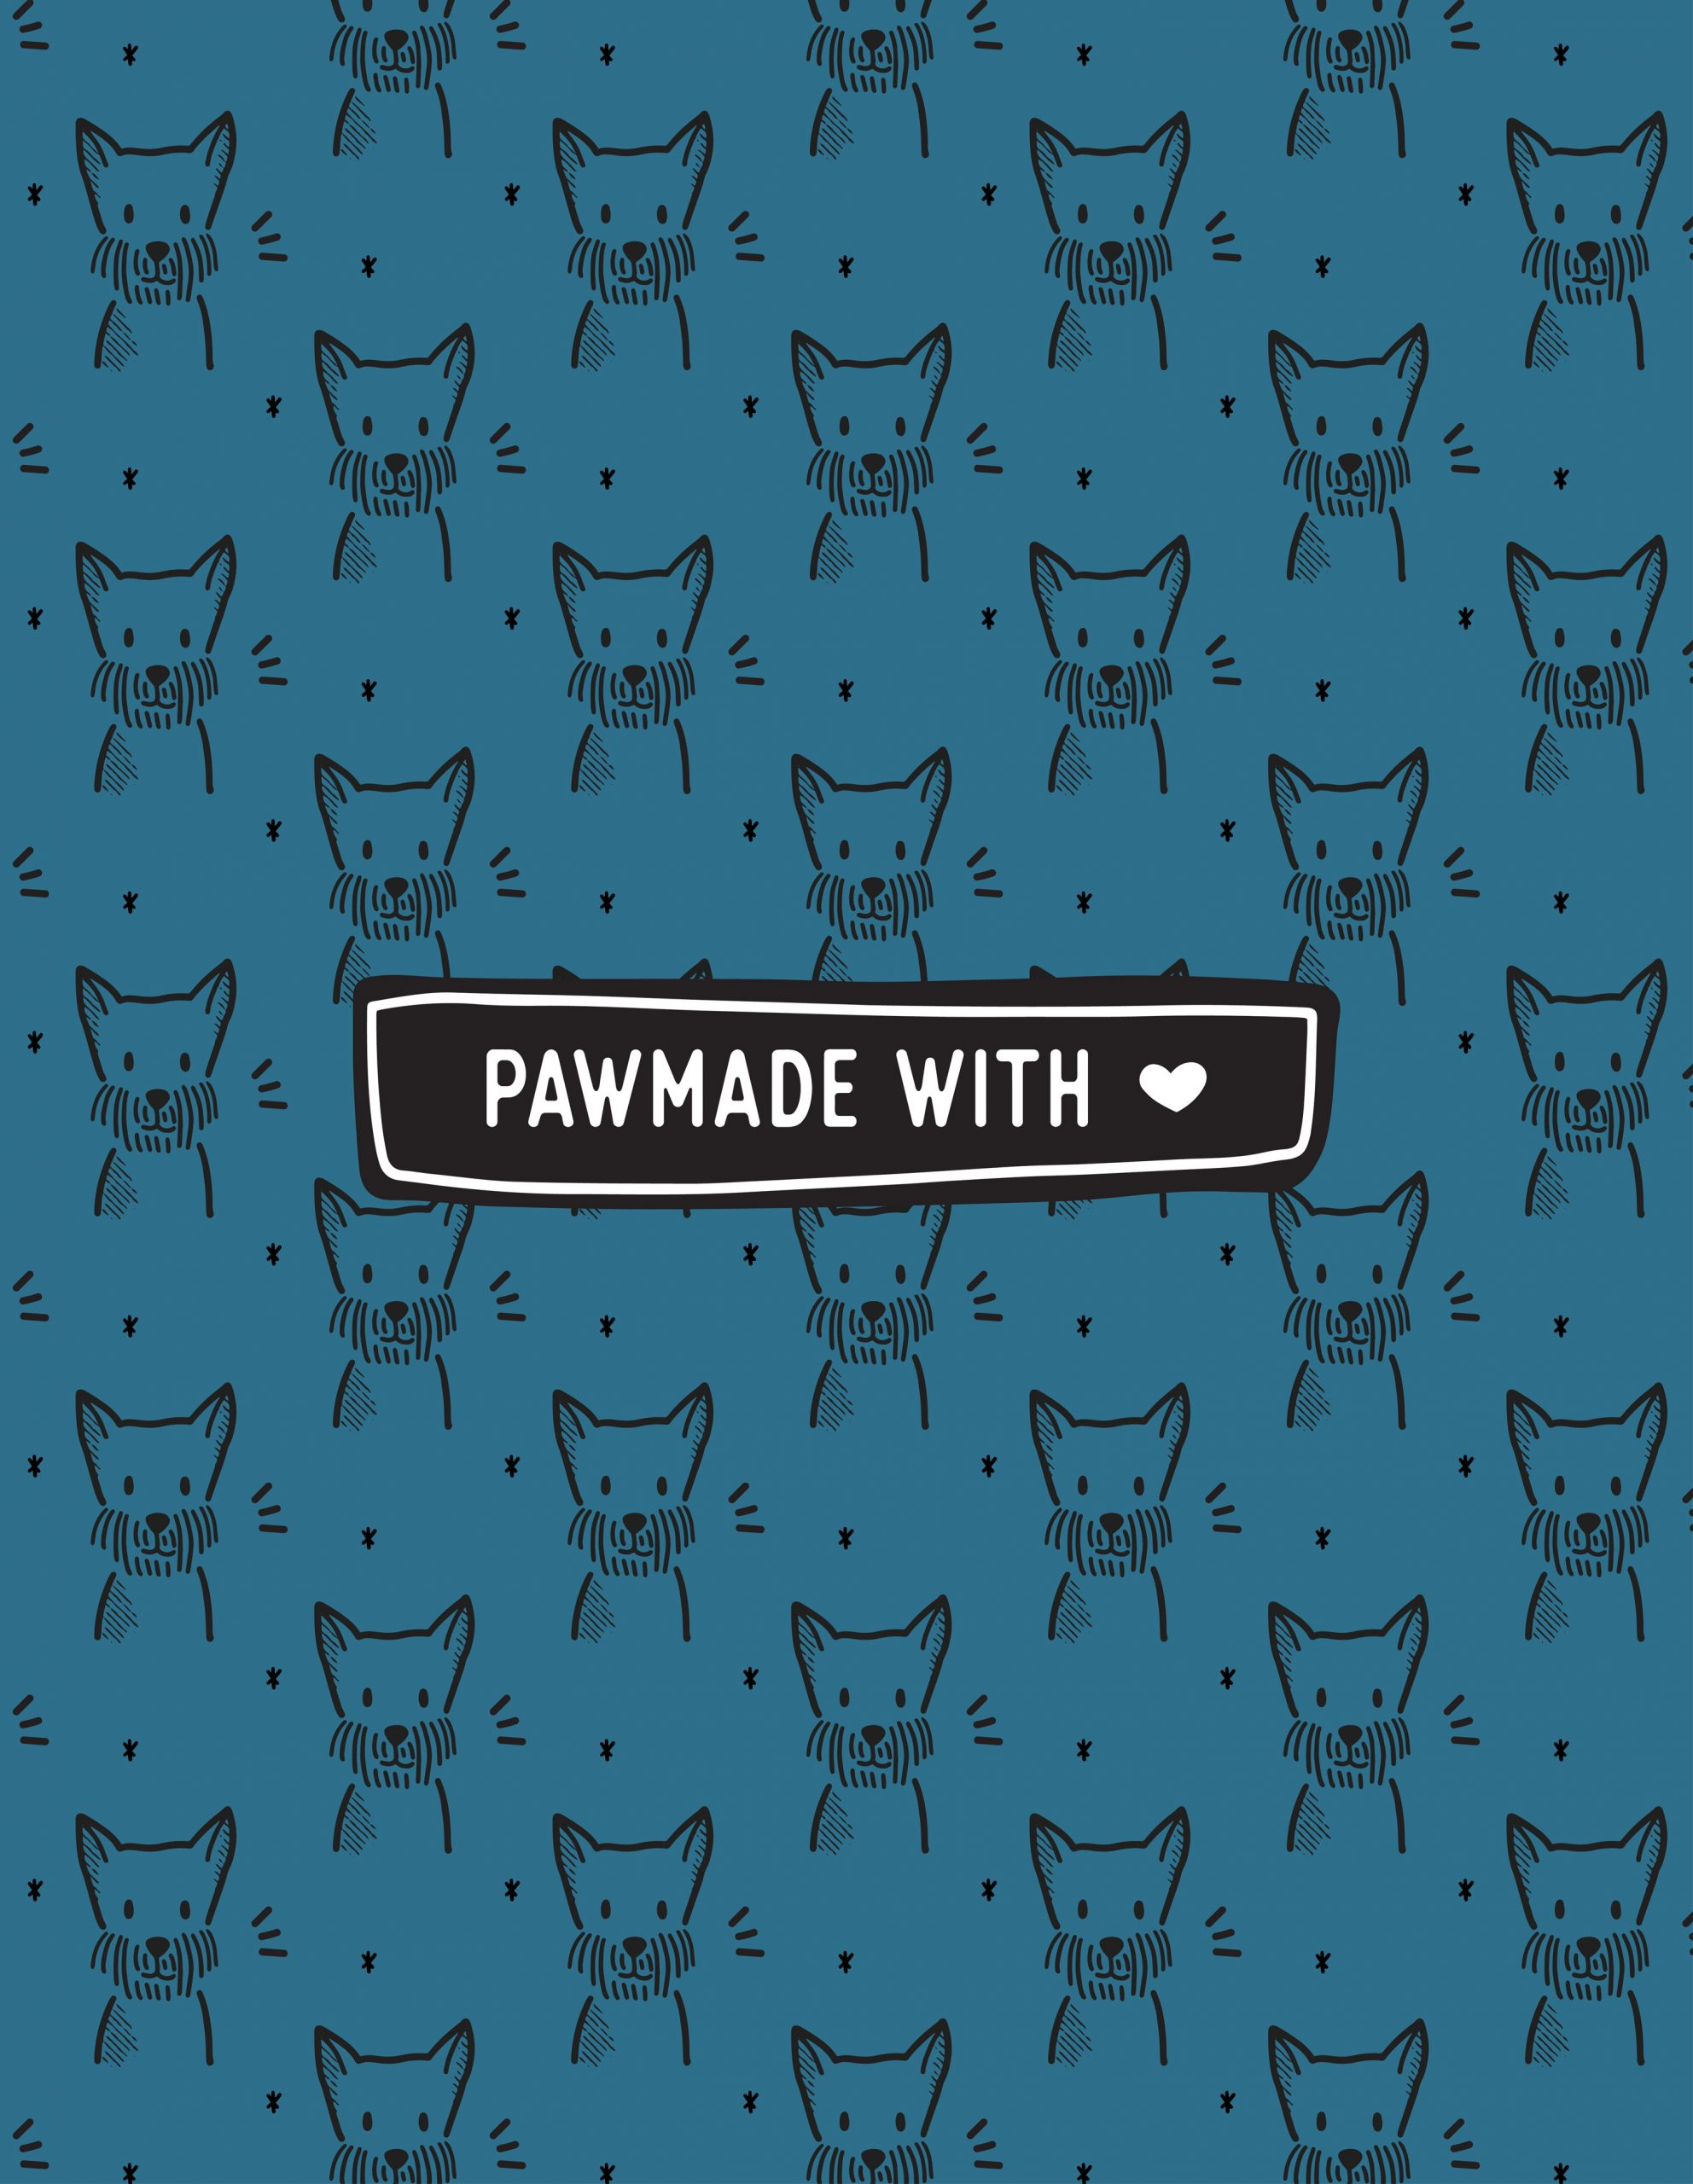 Paw made with love